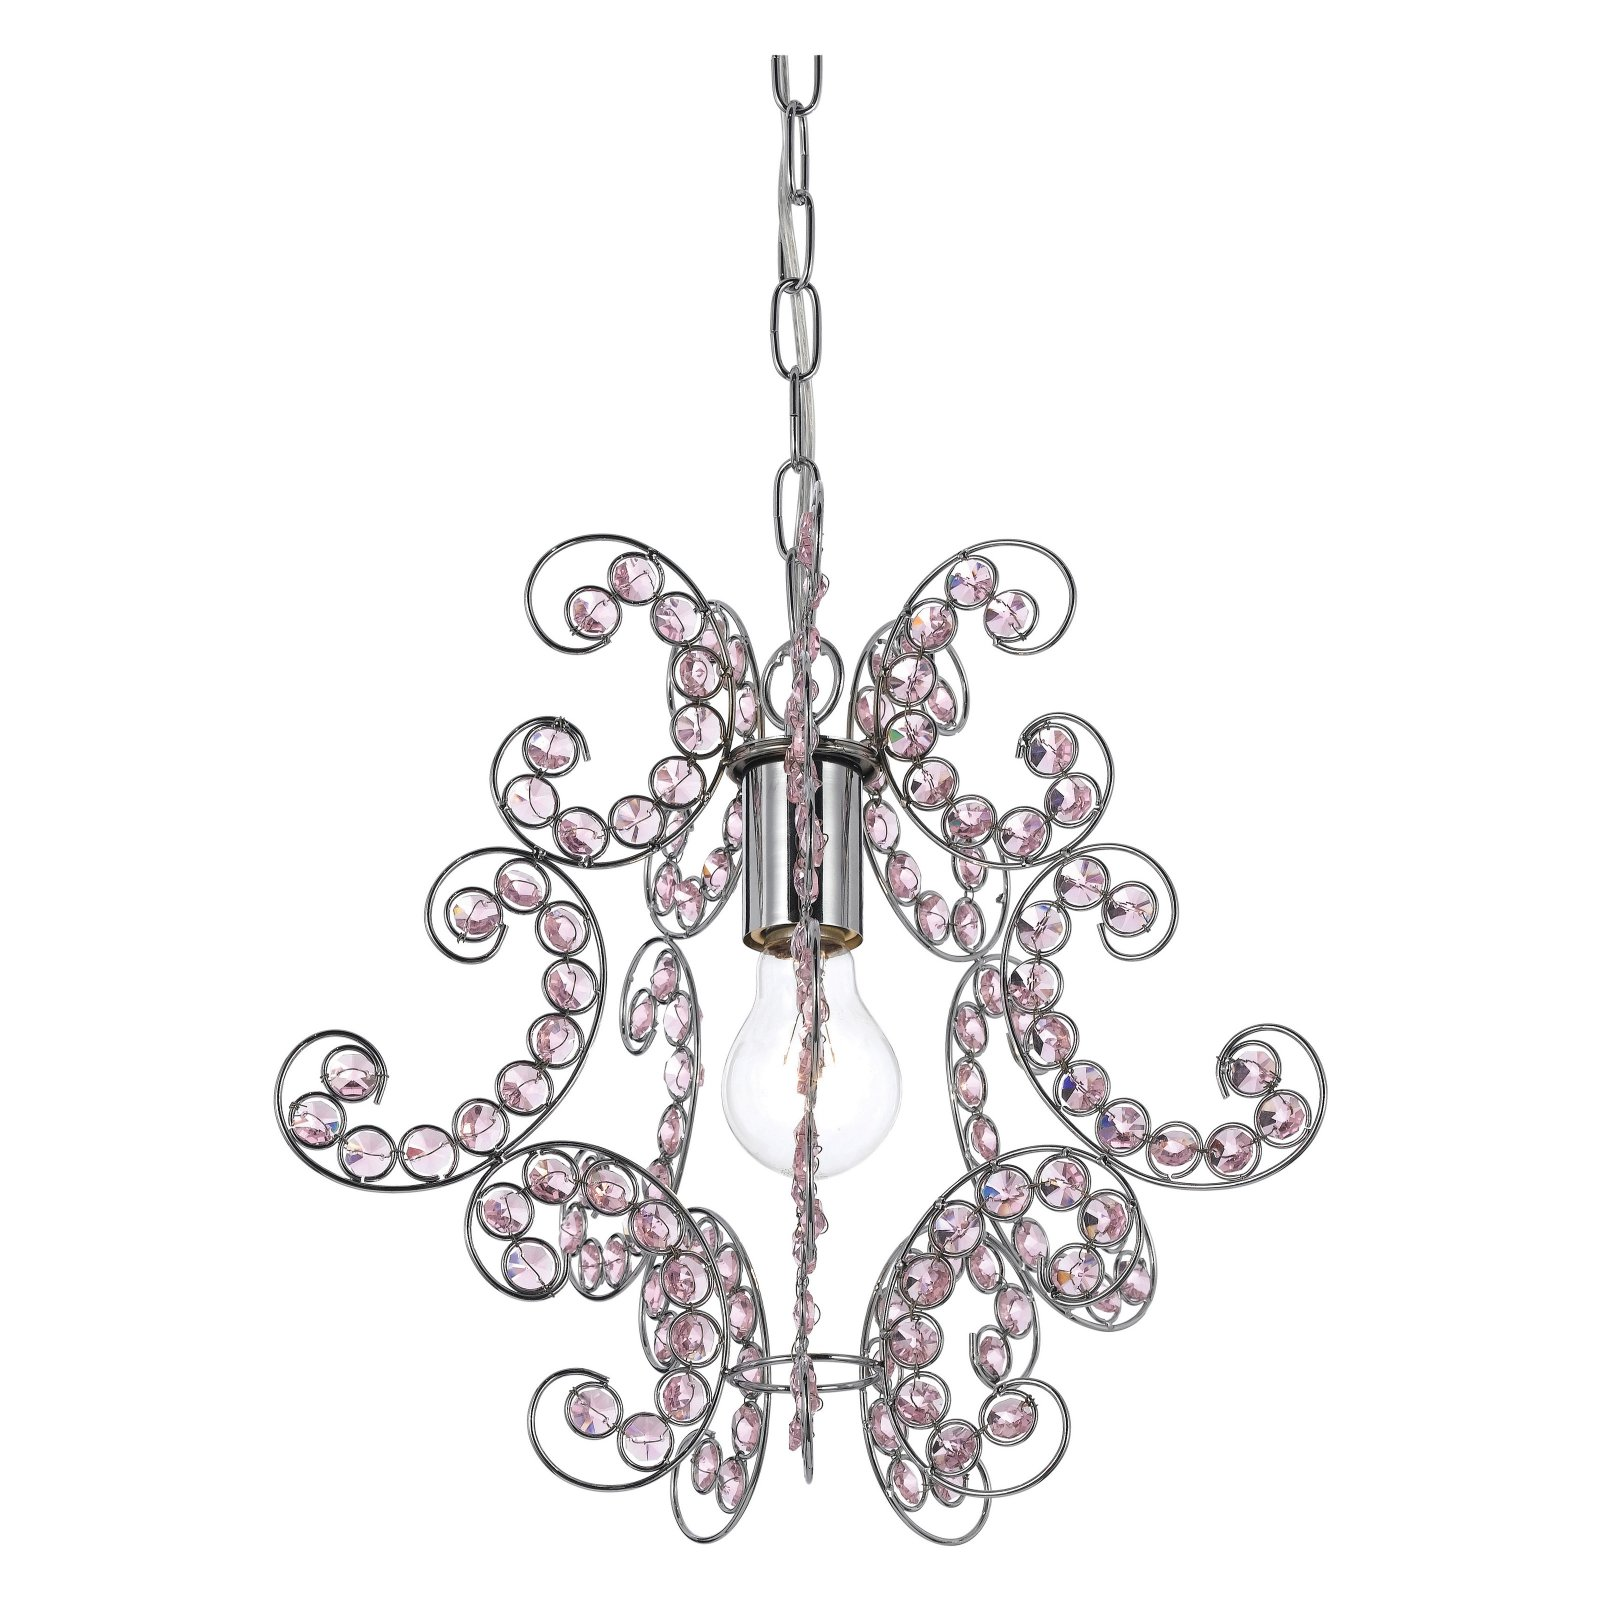 AF Lighting Elements 8477 Mini Chandelier